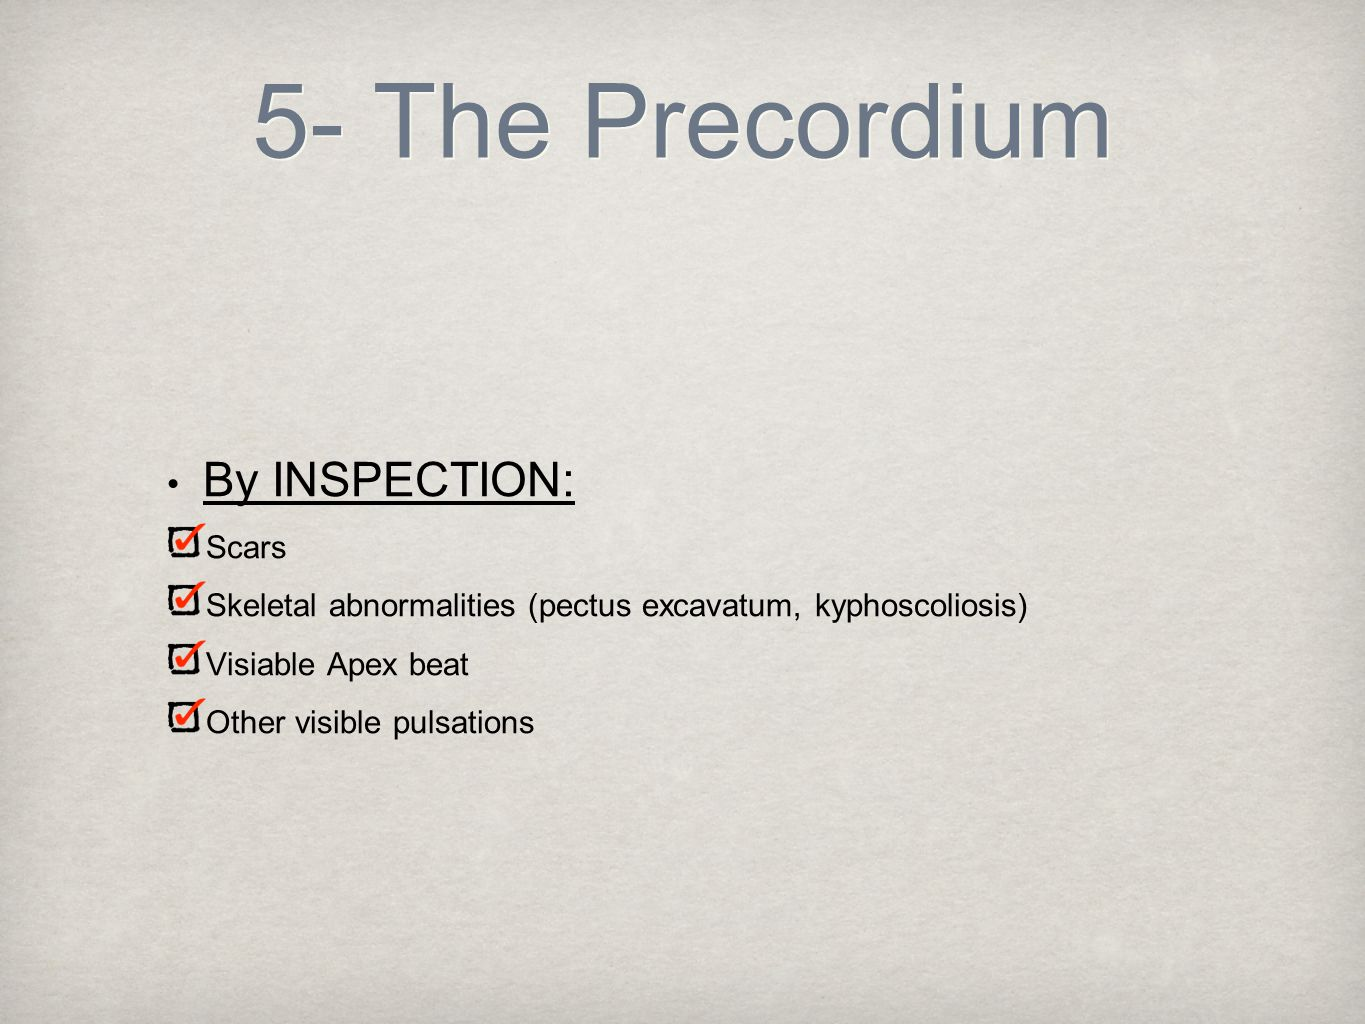 5- The Precordium By INSPECTION: Scars Skeletal abnormalities (pectus excavatum, kyphoscoliosis) Visiable Apex beat Other visible pulsations